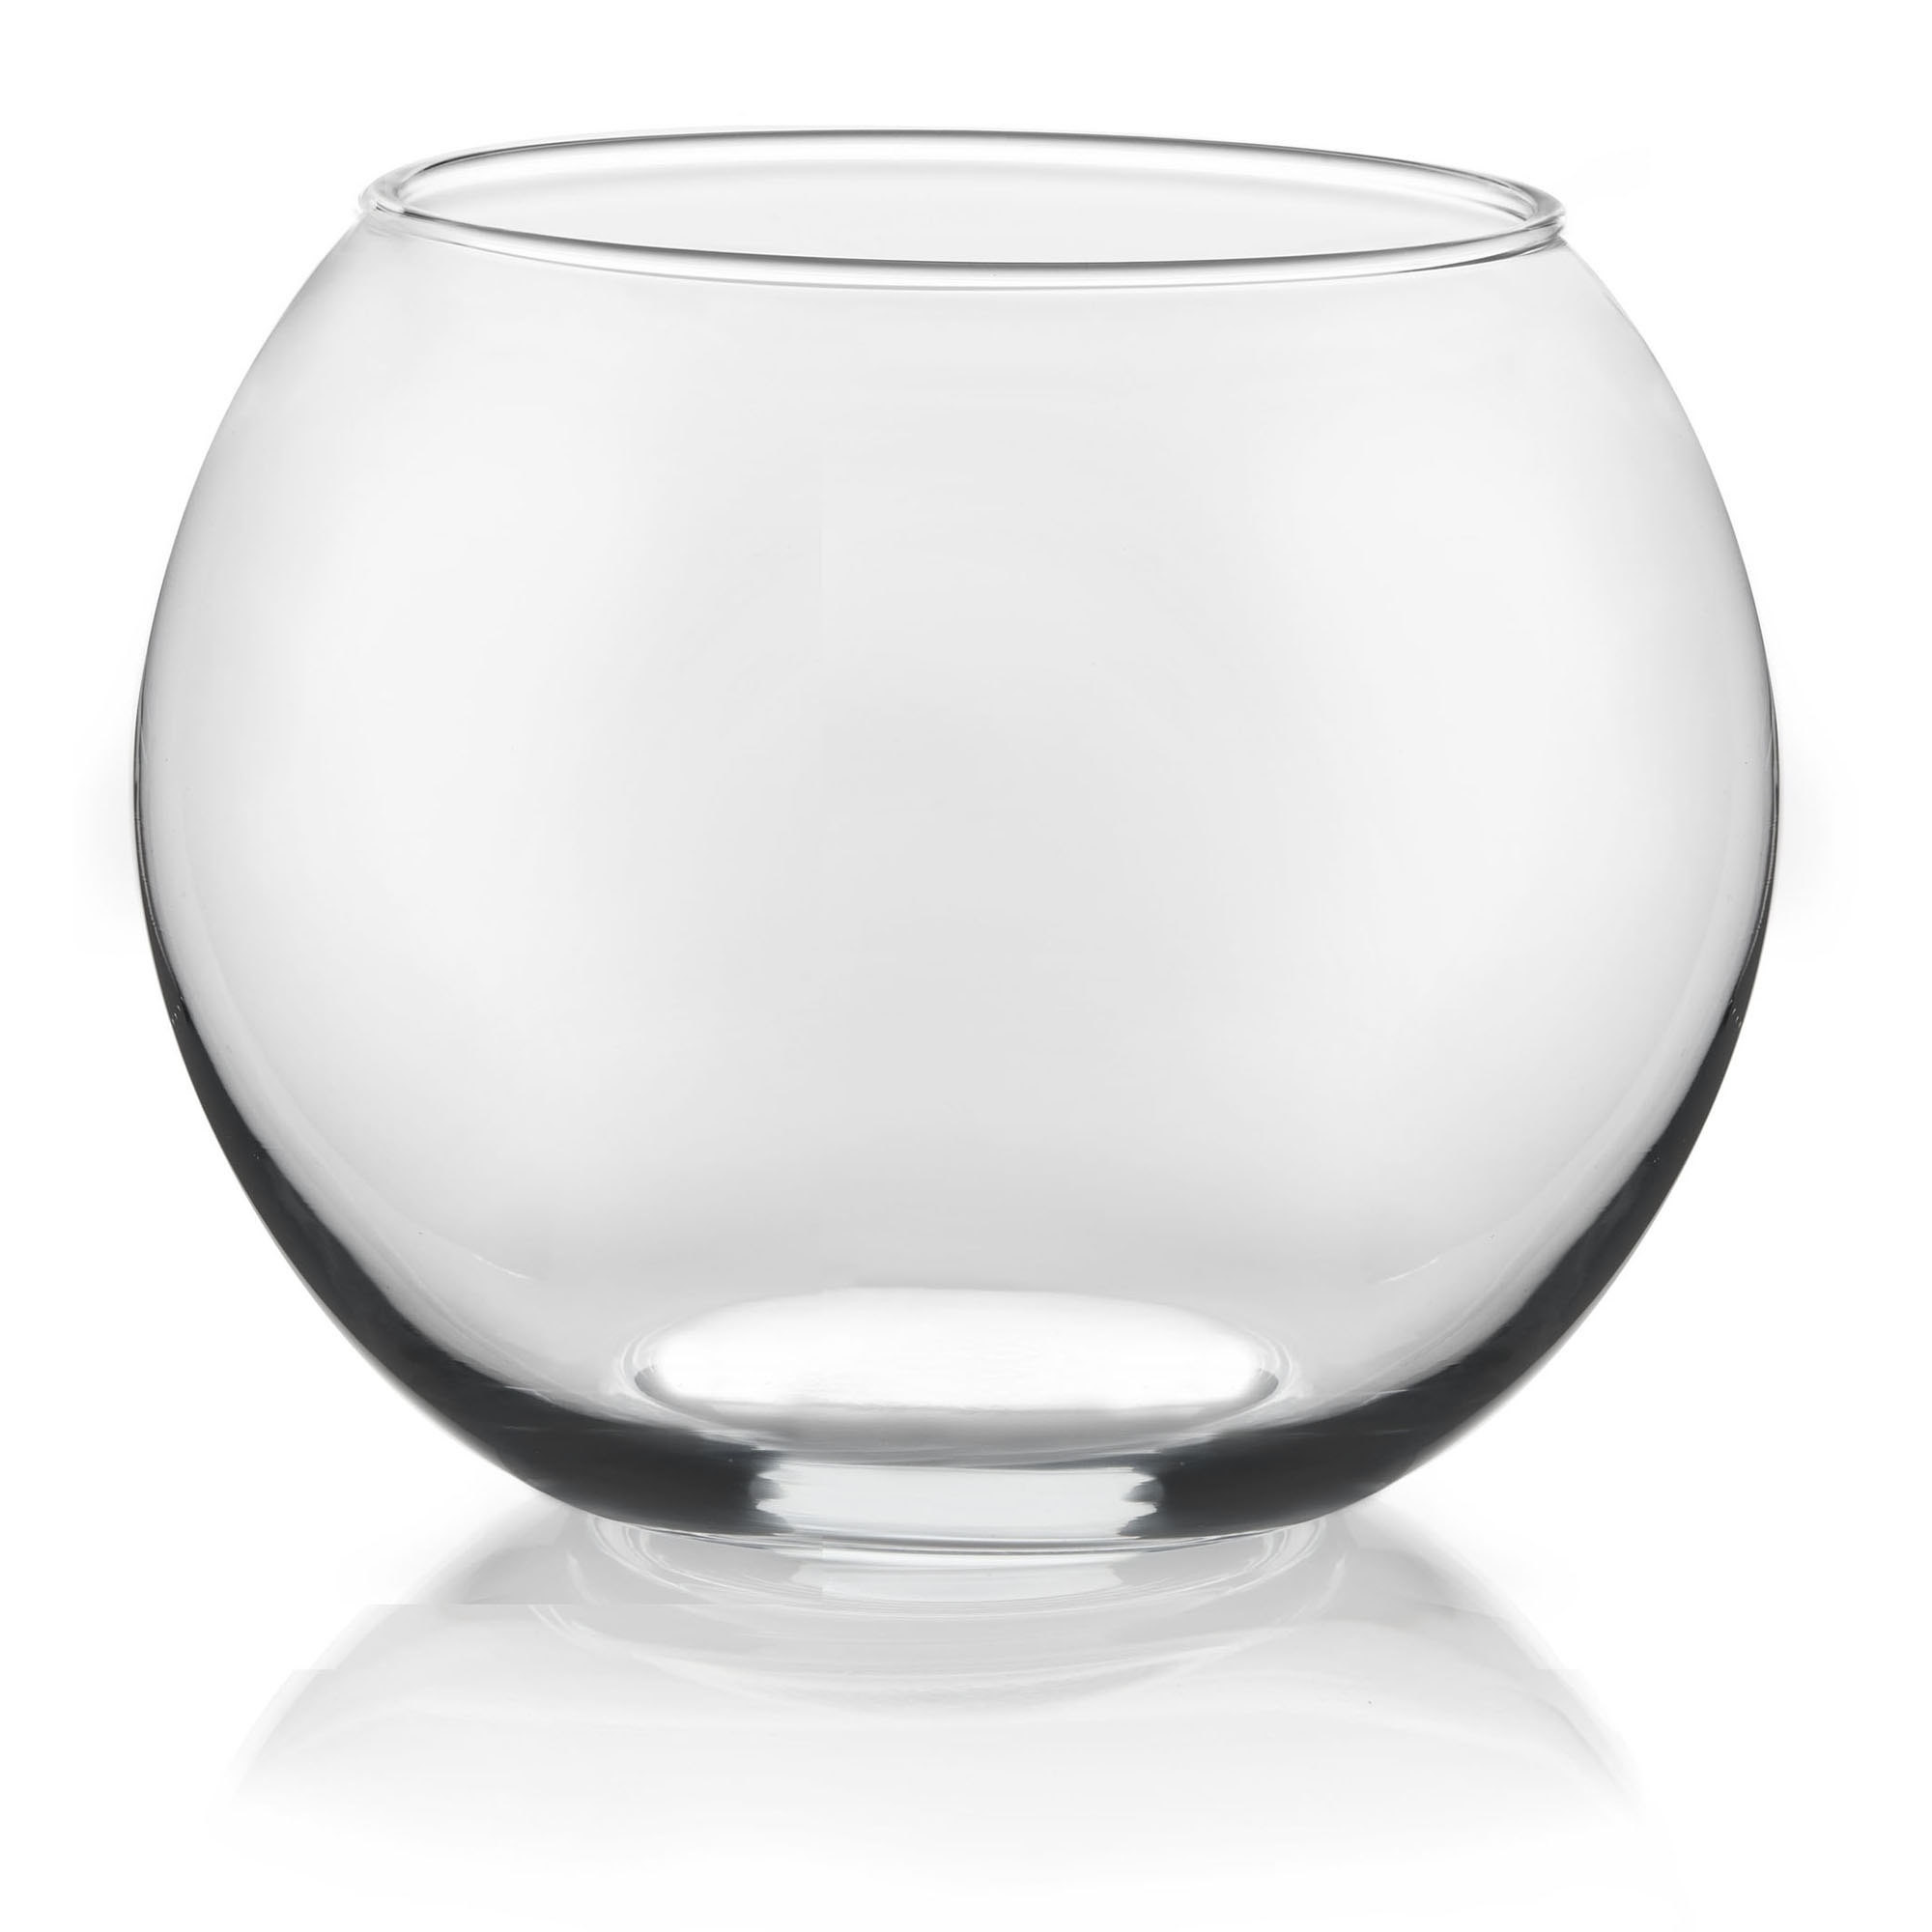 Libbey Glass tower Vase Of Libbey Bubble Ball Vase 8 Walmart Com Inside 125afa06 0b41 455e Ab2f 2f27716552d5 1 18ce88809b084e6847832db0a5125066